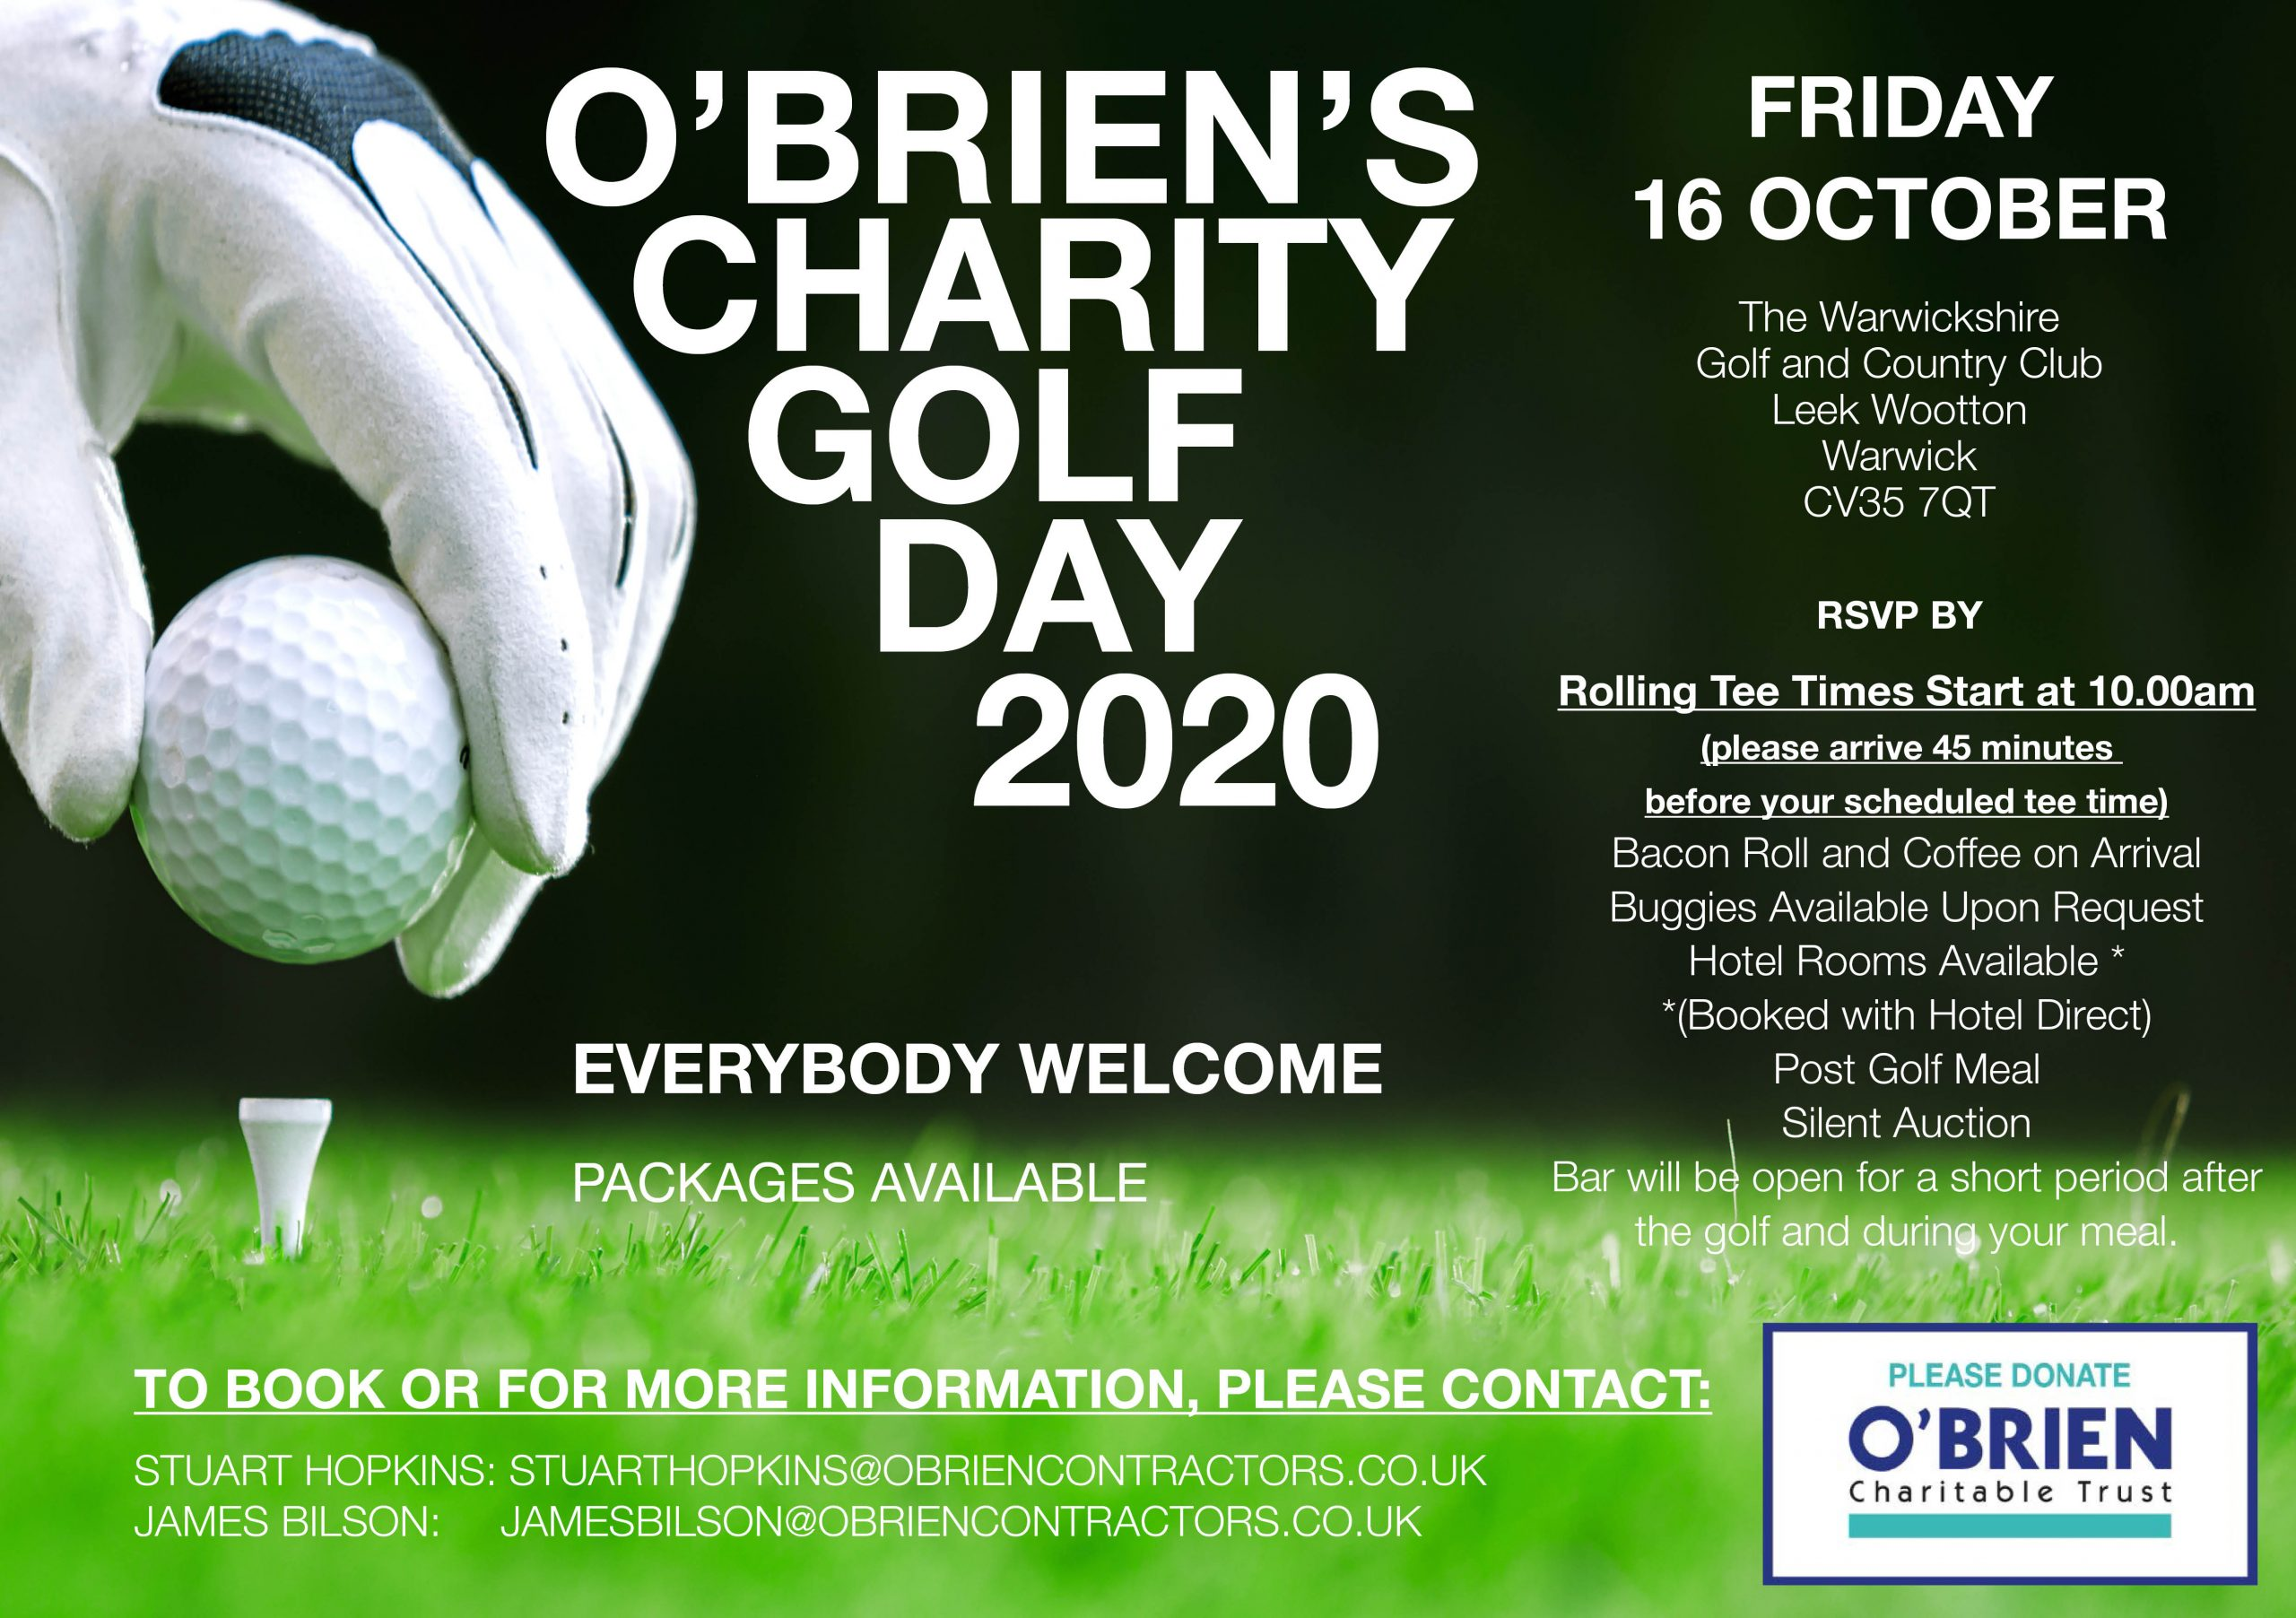 OUR CHARITY GOLF DAY IS BACK ON!!!! BOOK EARLY AS IT'S A VERY POPULAR EVENT!